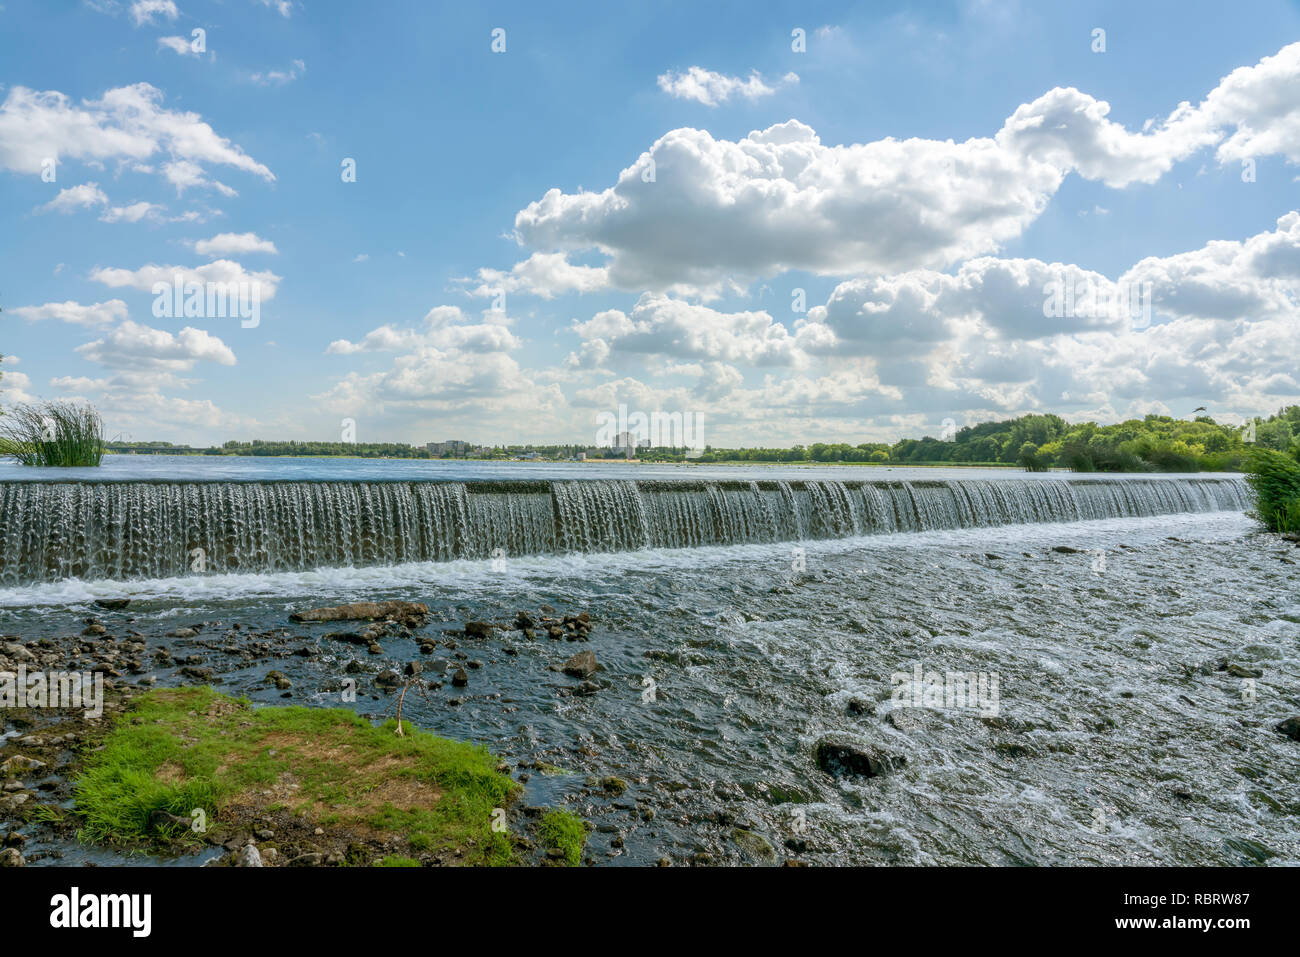 Regulated water flow of that flows through the middle of a city. Russia, Lipetsk. Stock Photo